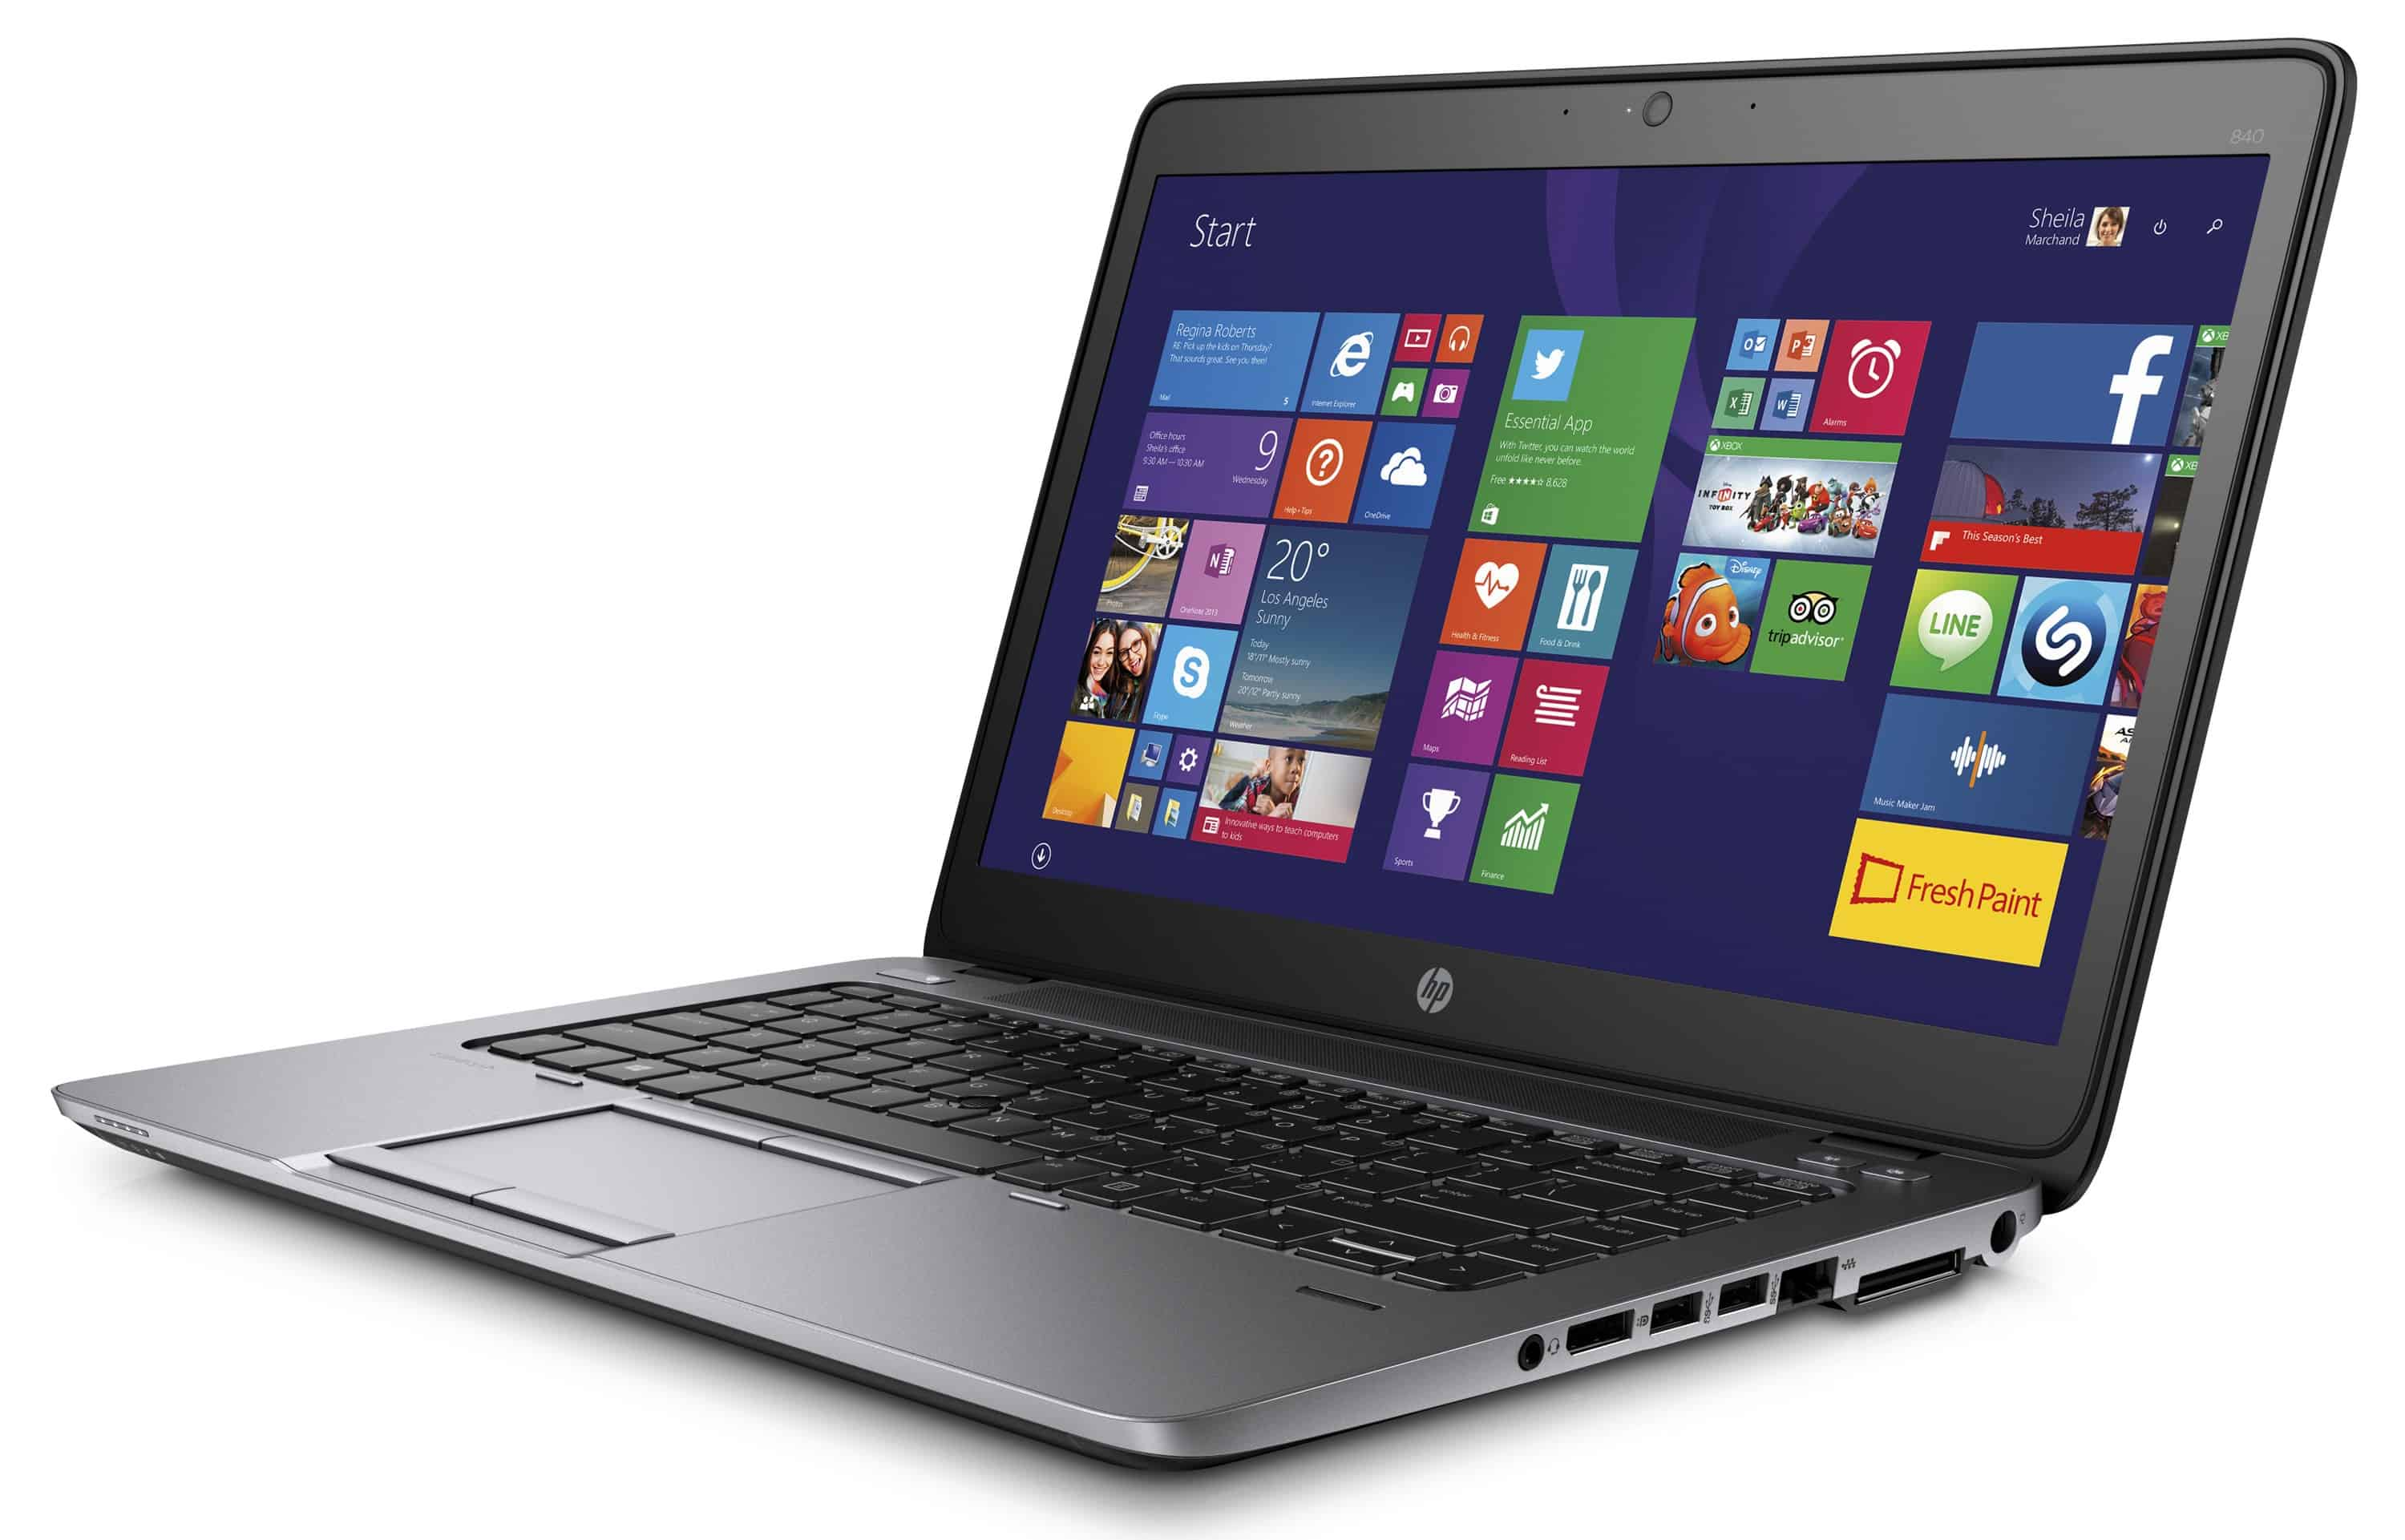 HP 840 G2 14 Inch I5-5200U 4GB/500GB/W10P (Refurbished)